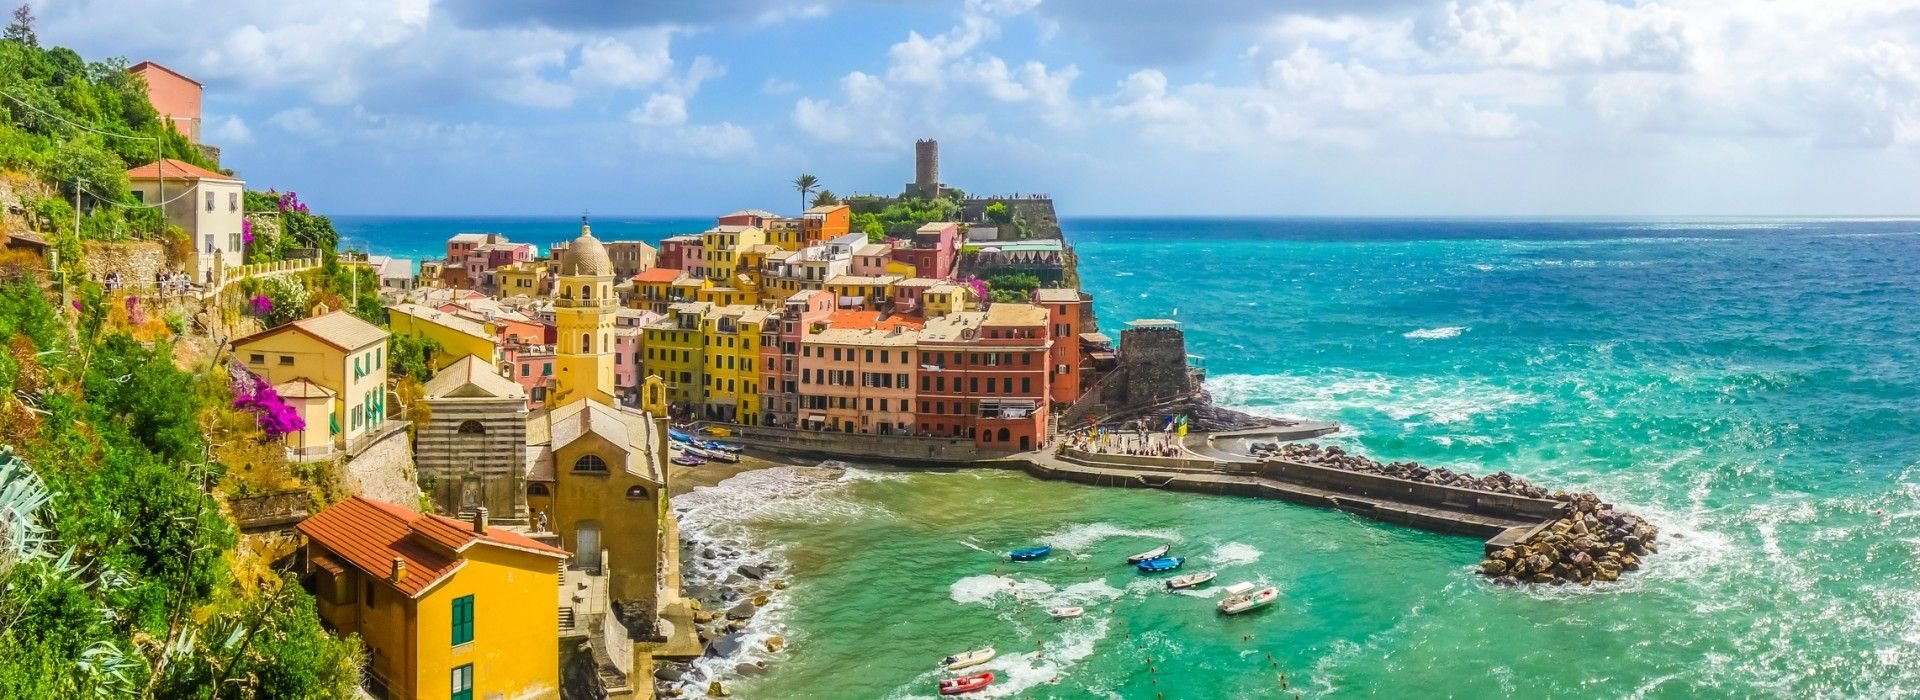 Sightseeing, attractions, culture and history Tours in Naples